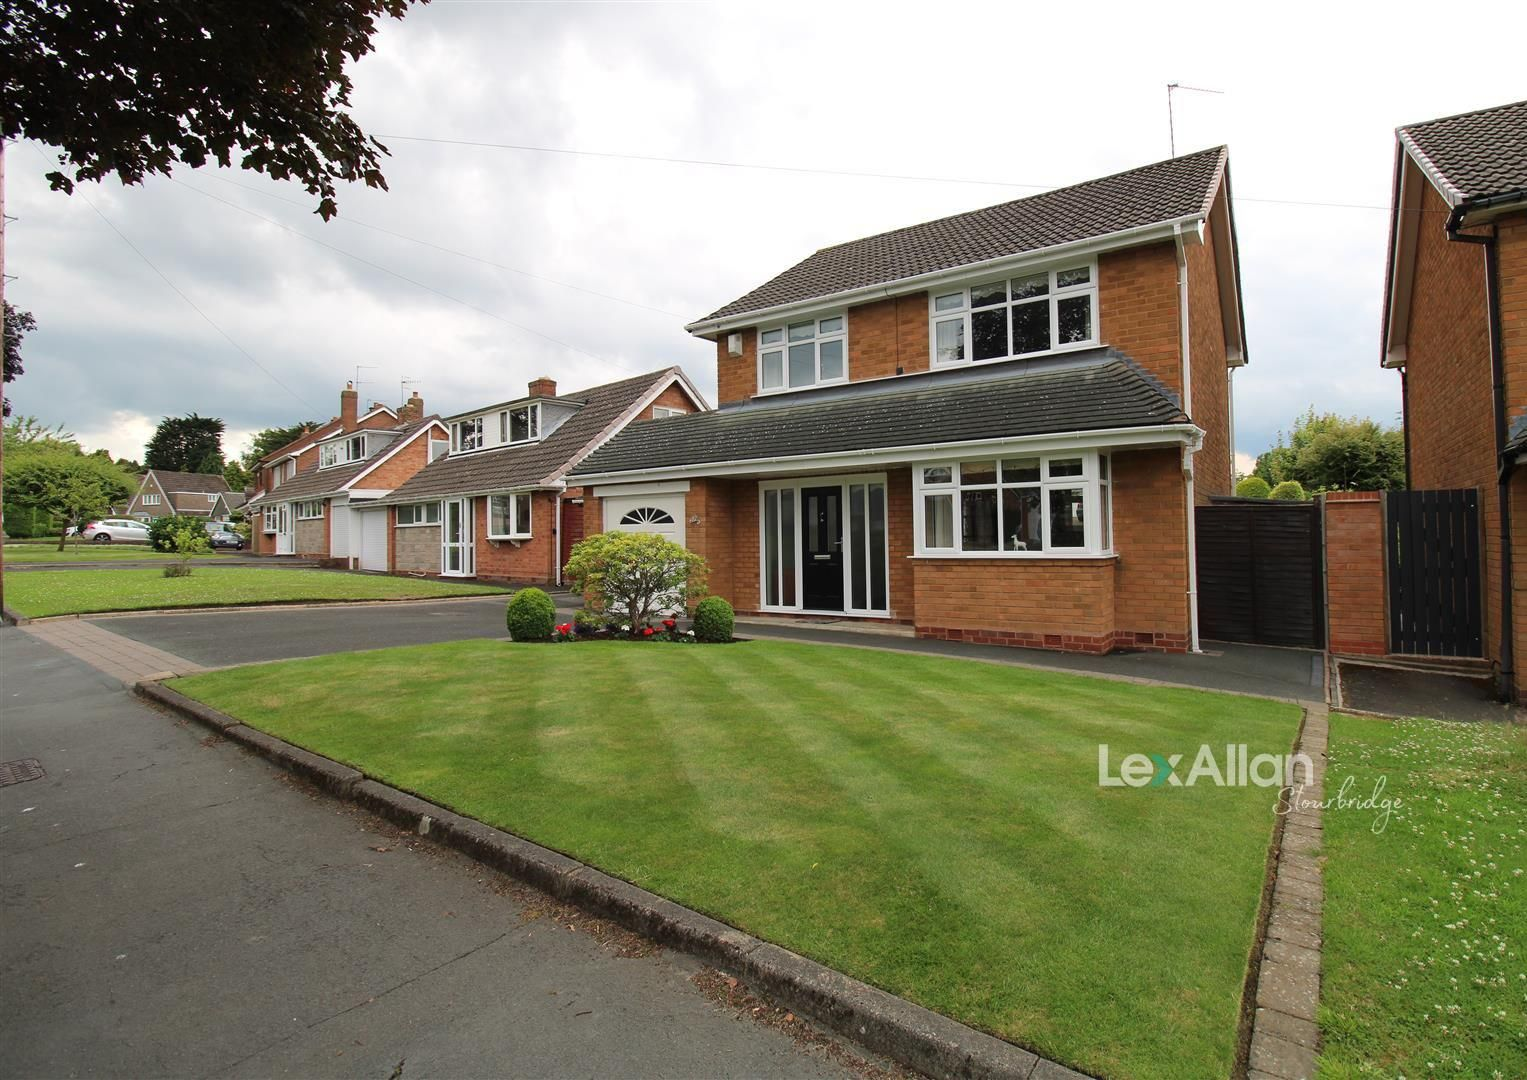 3 bed detached for sale in Pedmore - Property Image 1